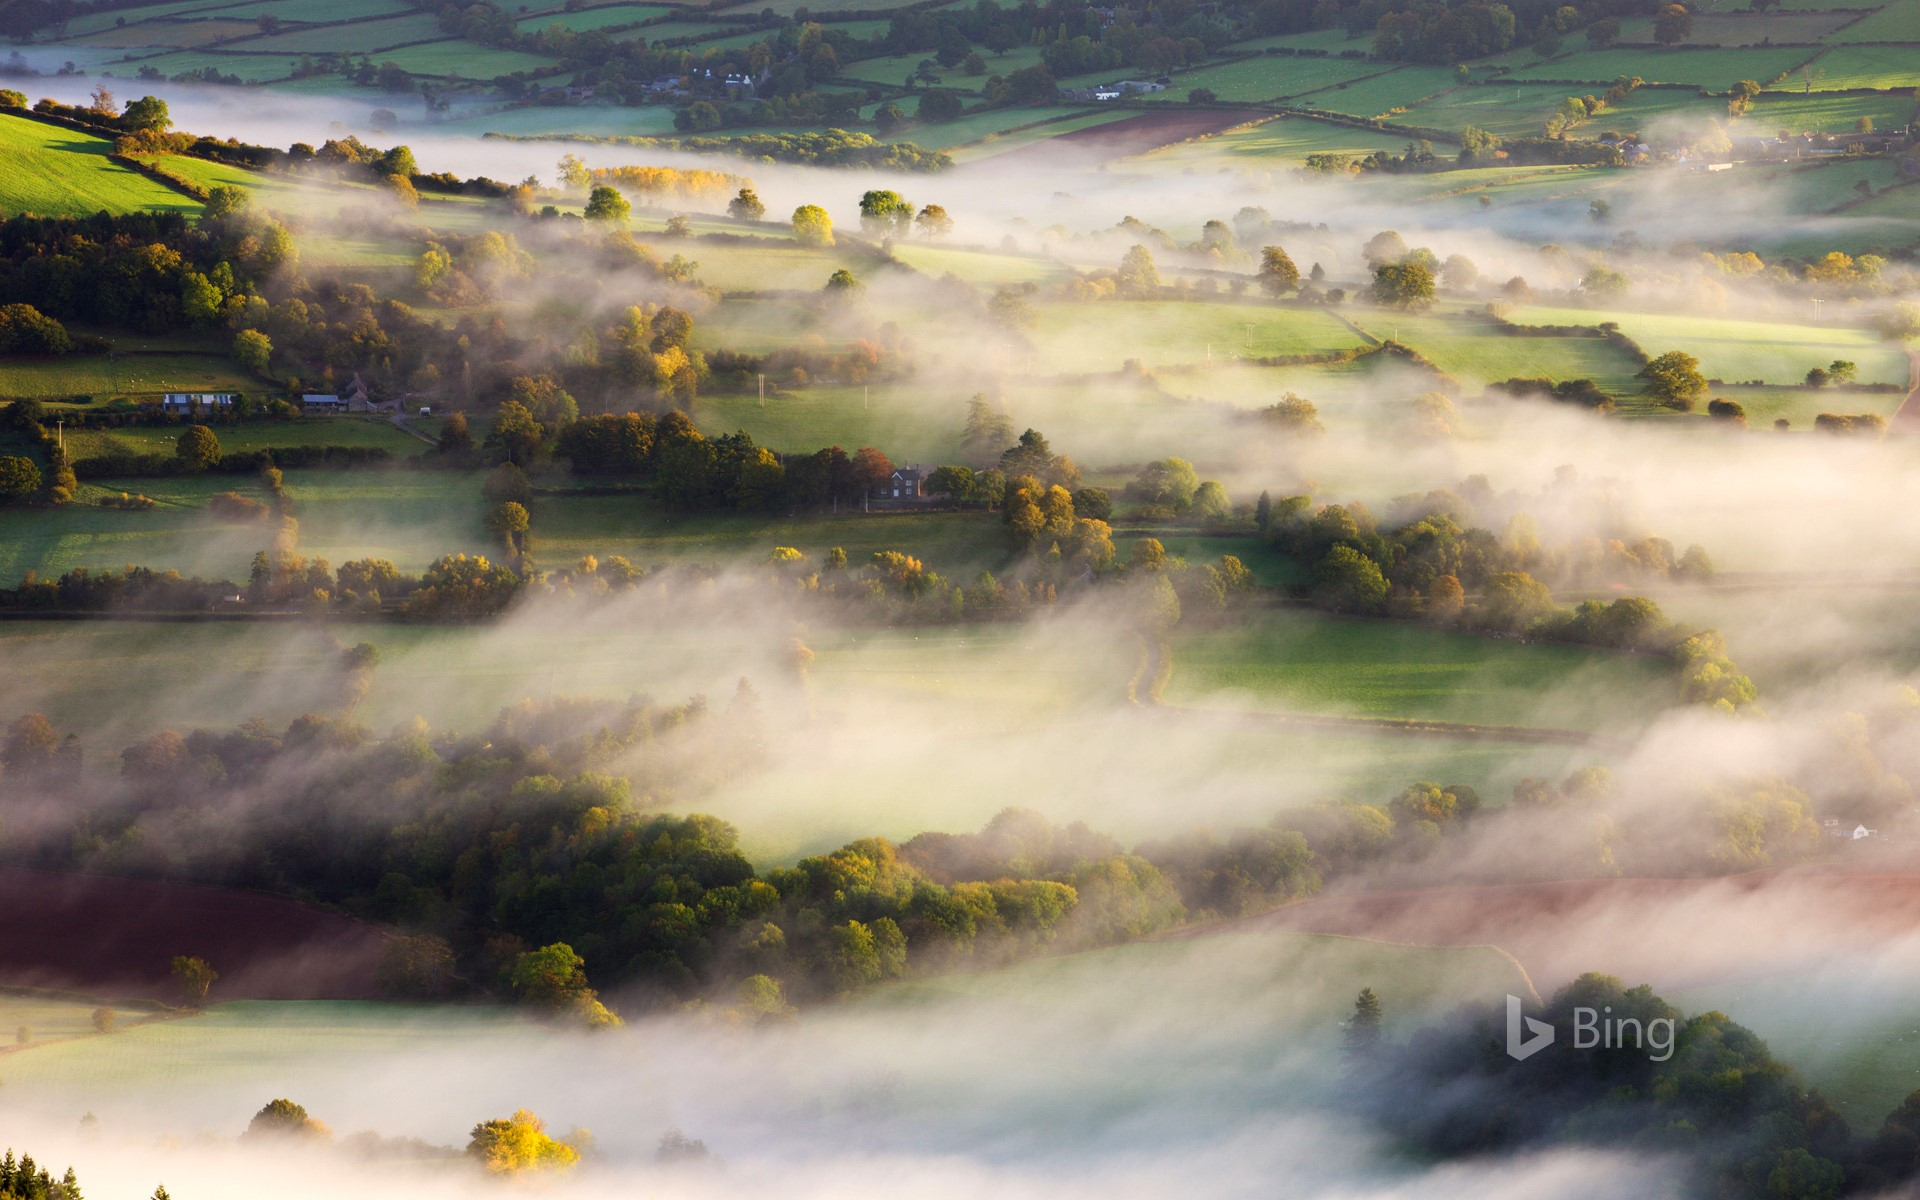 Mist blows over rolling countryside near Talybont-on-Usk in Brecon Beacons National Park, Wales